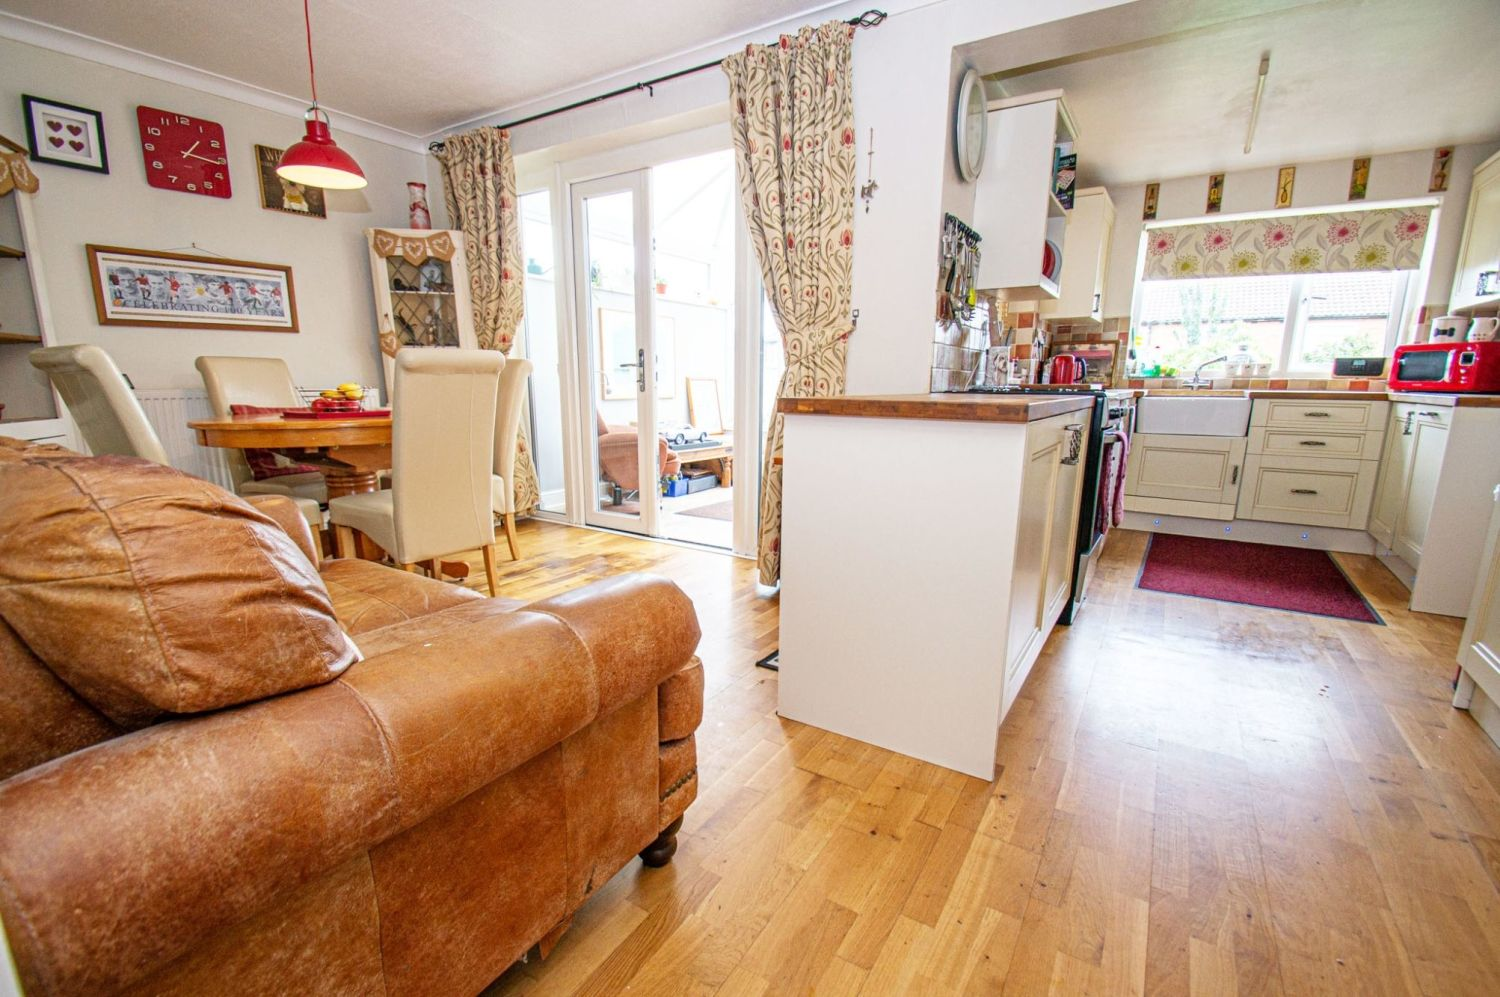 4 bed semi-detached for sale in Wheatcroft Close, Halesowen  - Property Image 6